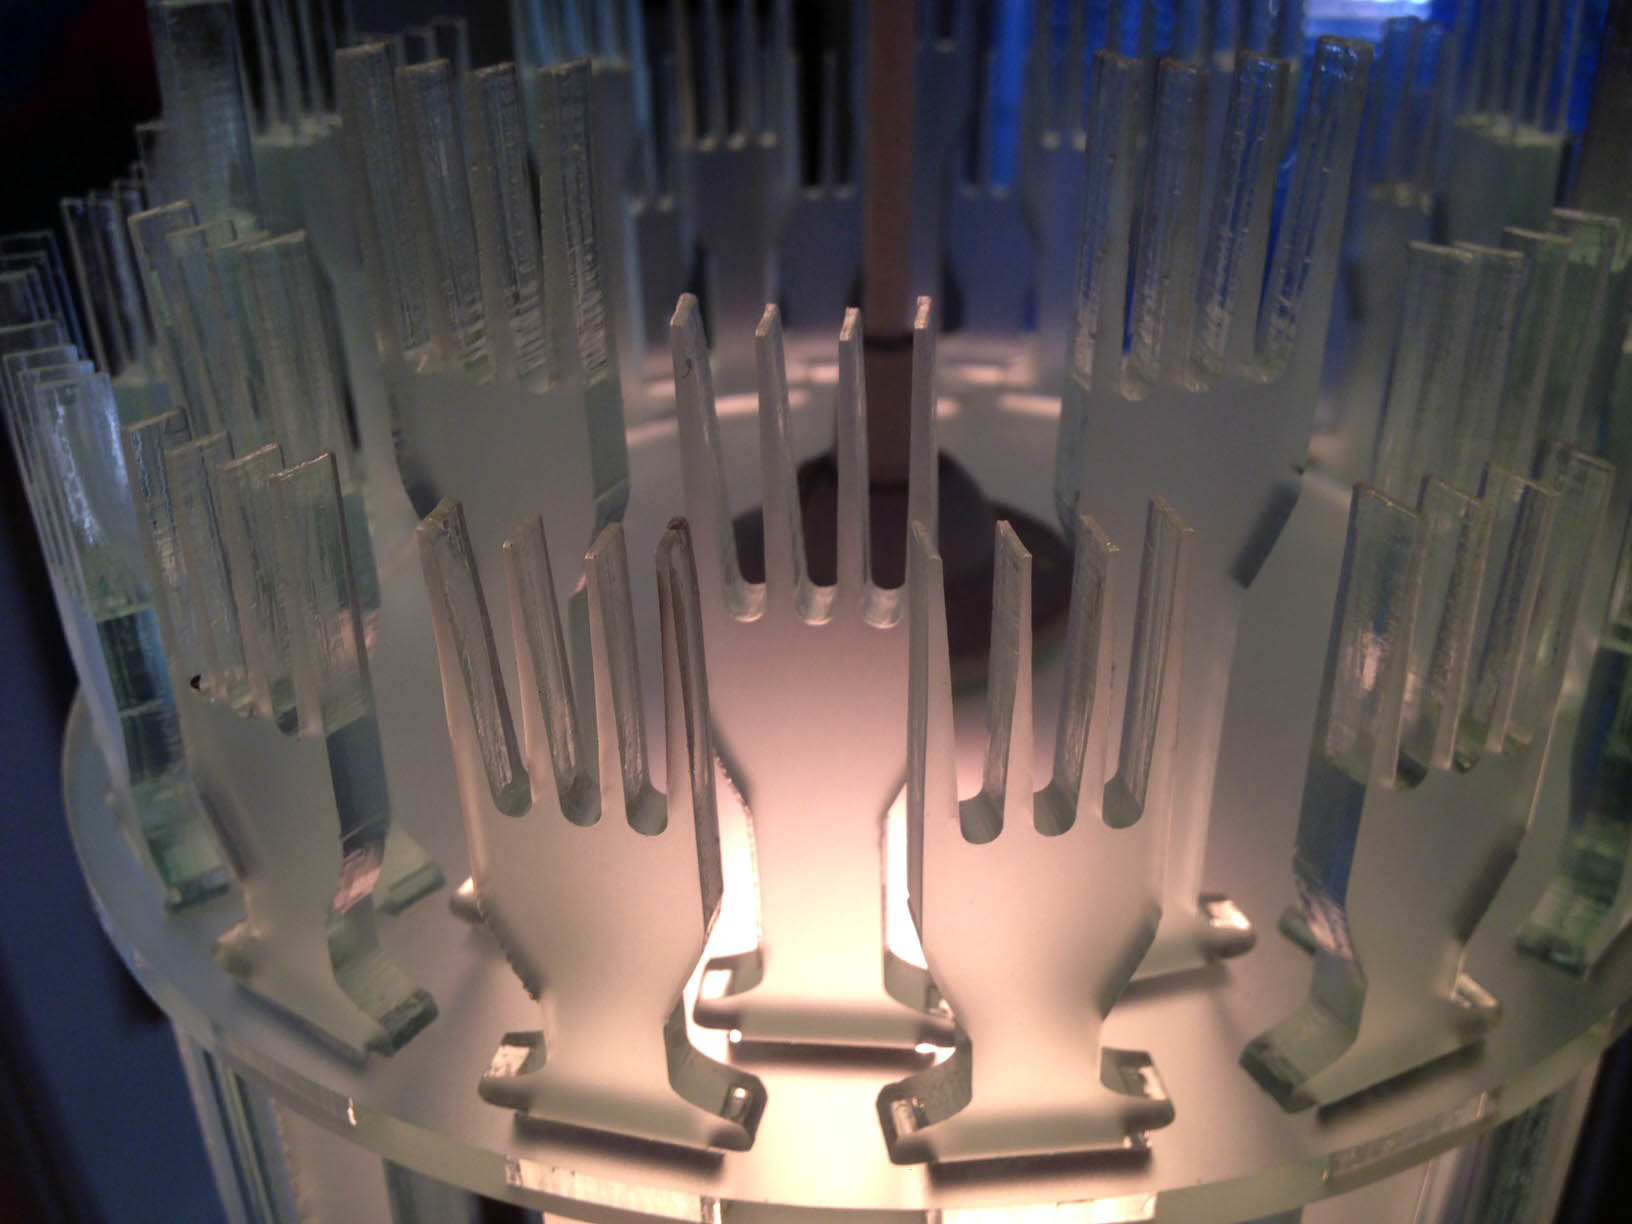 top view of Forks over knives luminaire